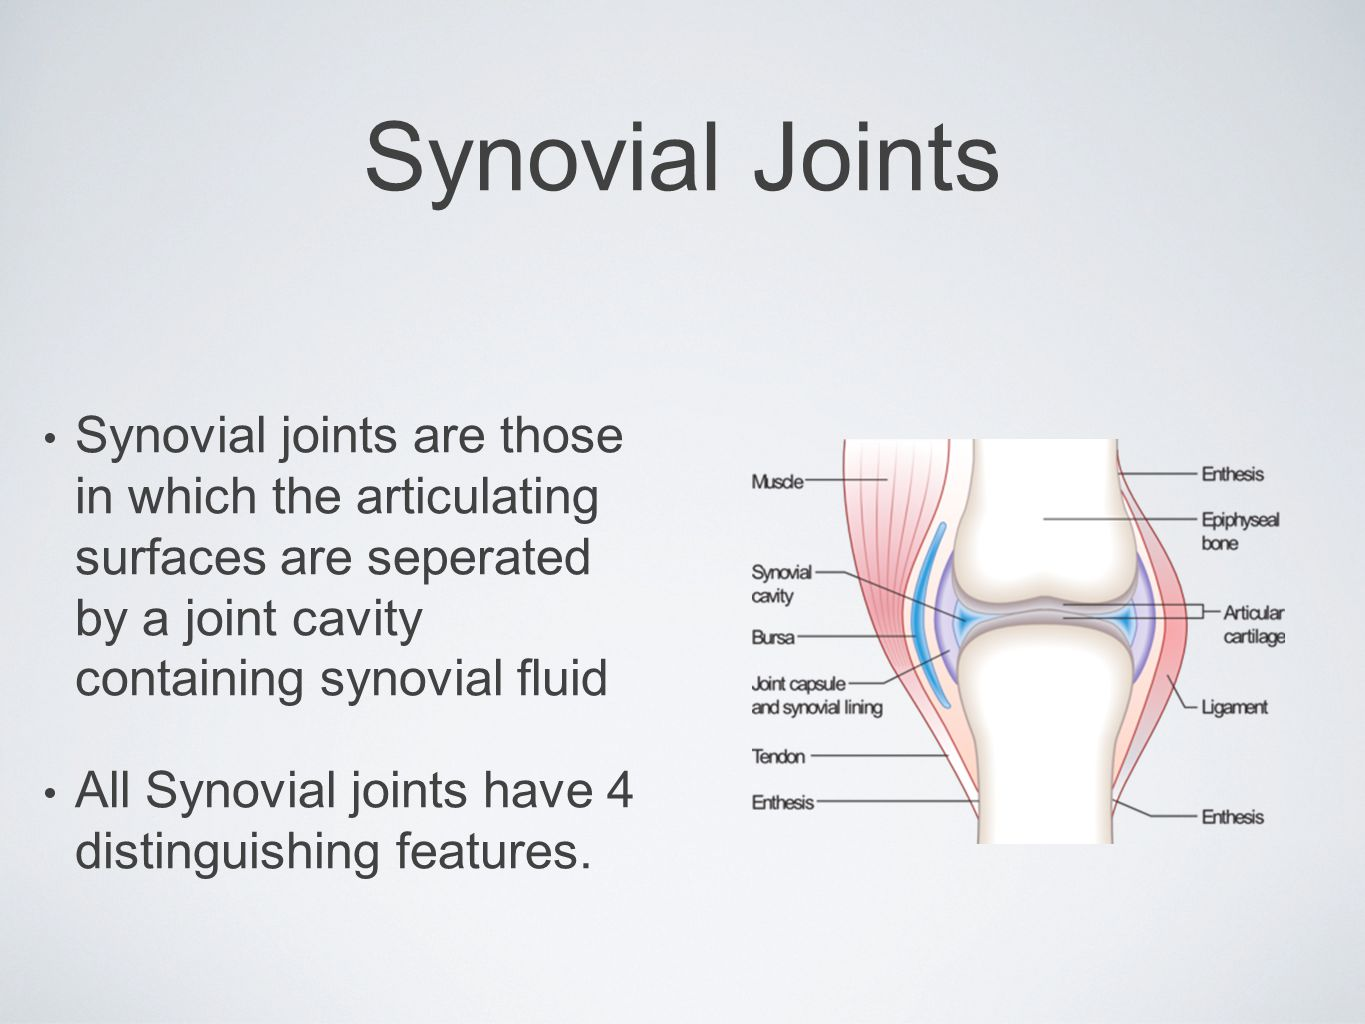 Synovial Joints Synovial joints are those in which the articulating surfaces are seperated by a joint cavity containing synovial fluid.